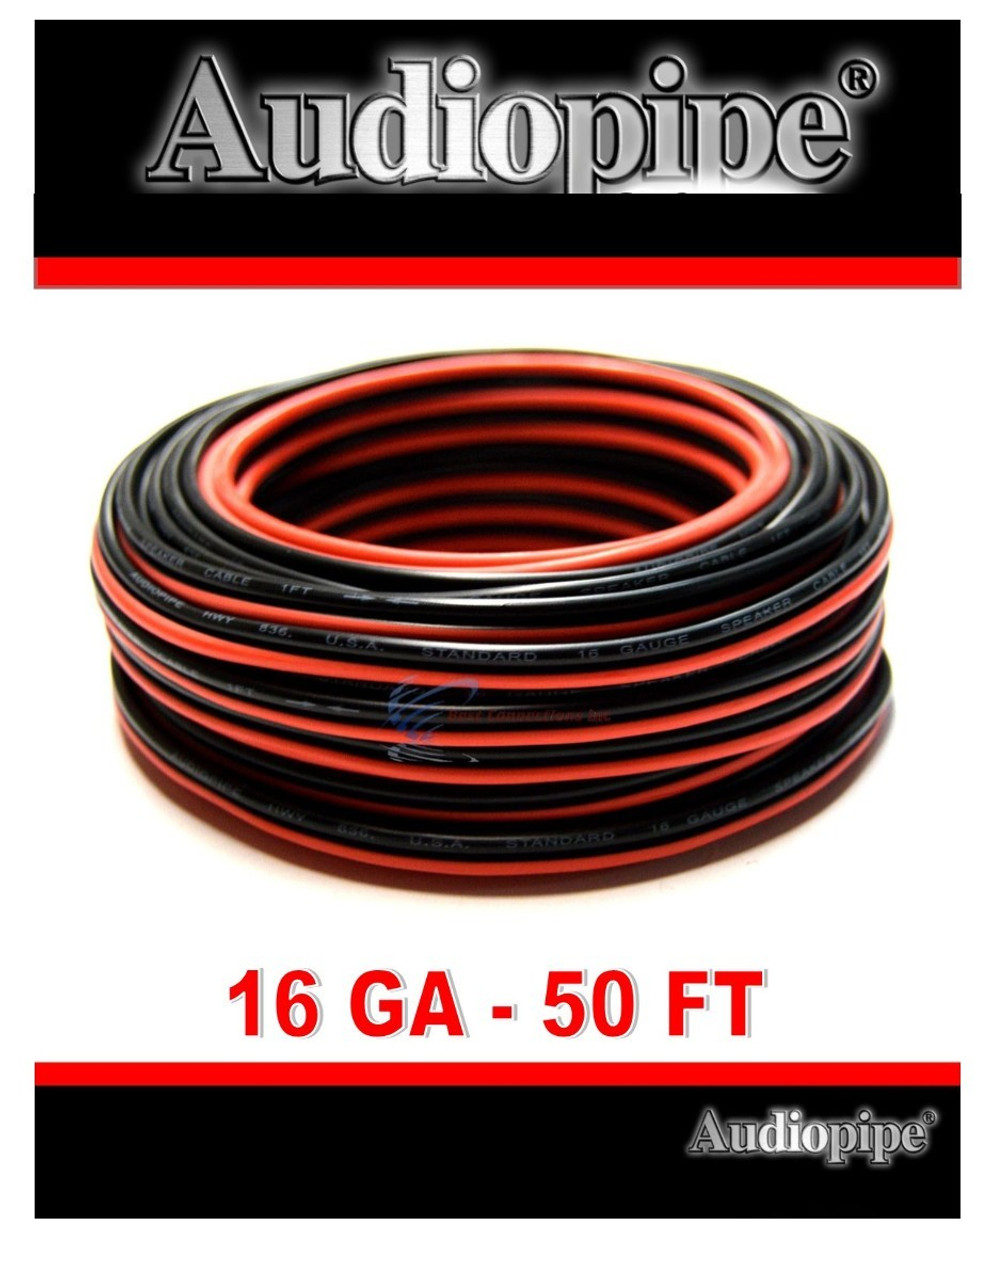 Best Speaker Wire >> 16 Gauge 50 Feet Speaker Wire Red Black Jacket Zip Cord Cable Copper Clad Cca